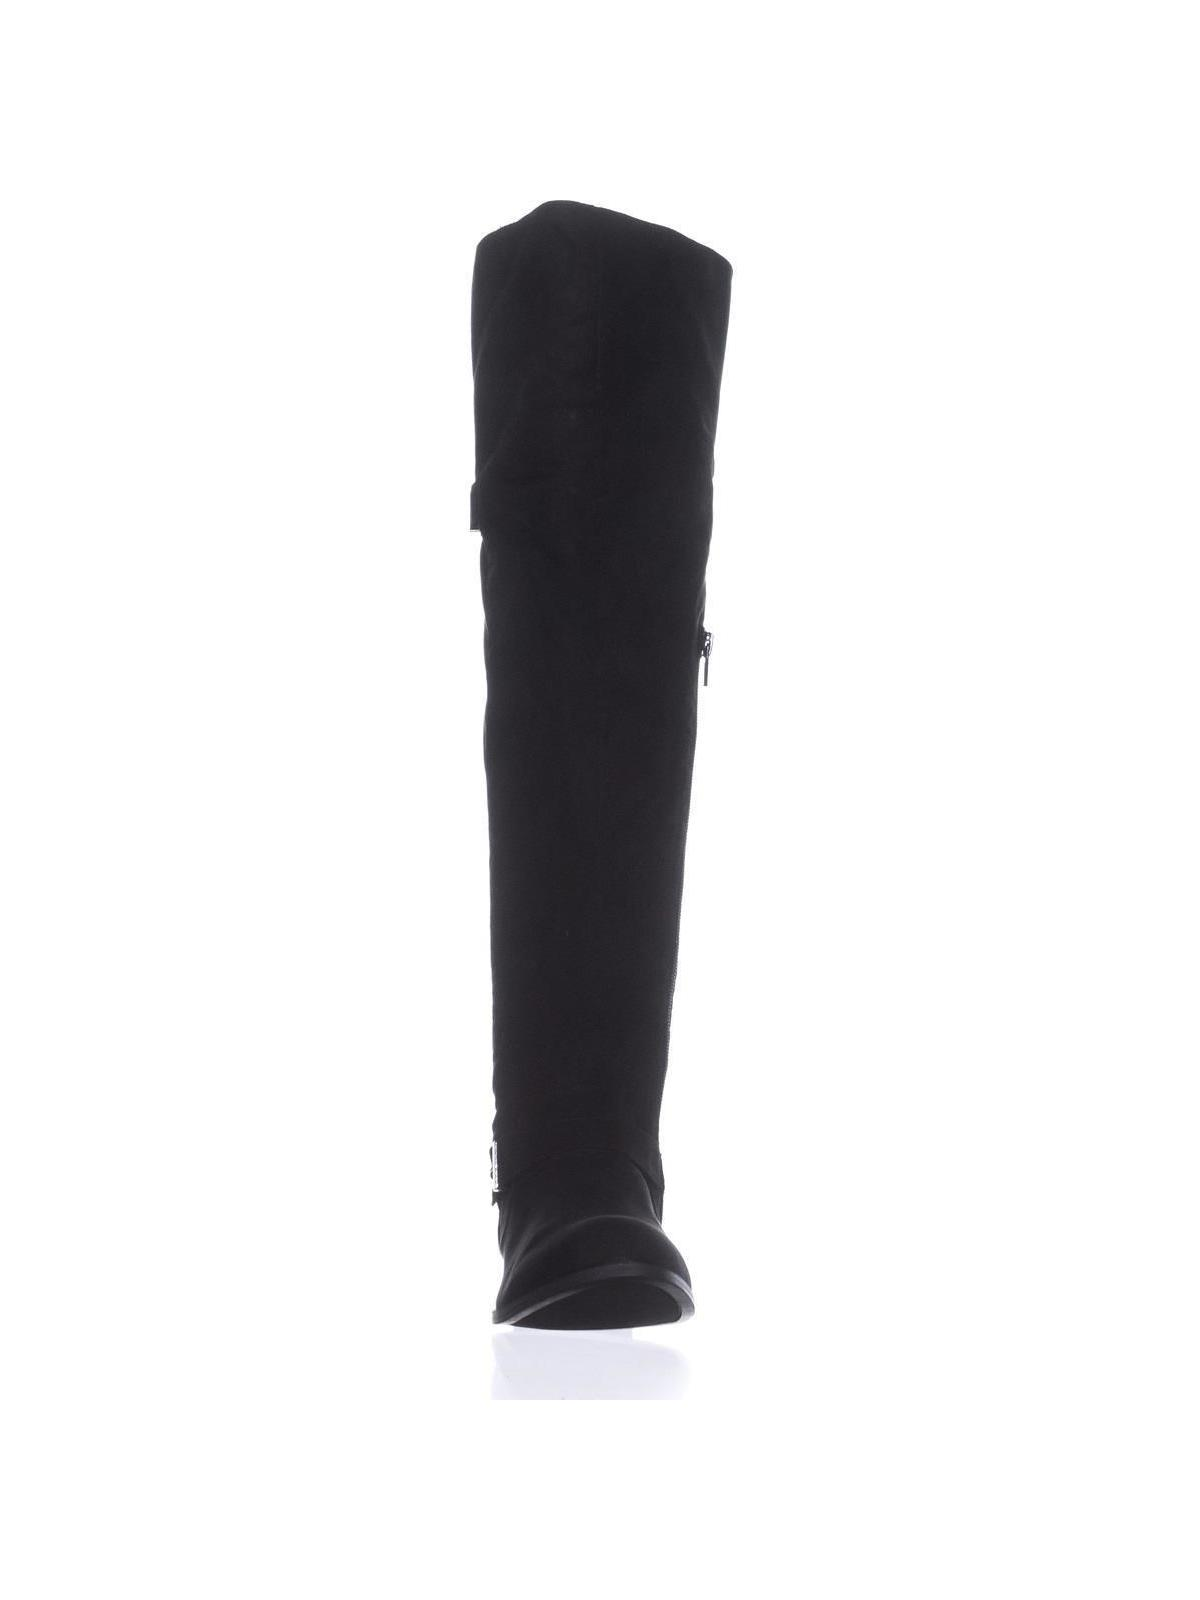 db65f521a0e B35 Daphne Over The Knee Riding Boots